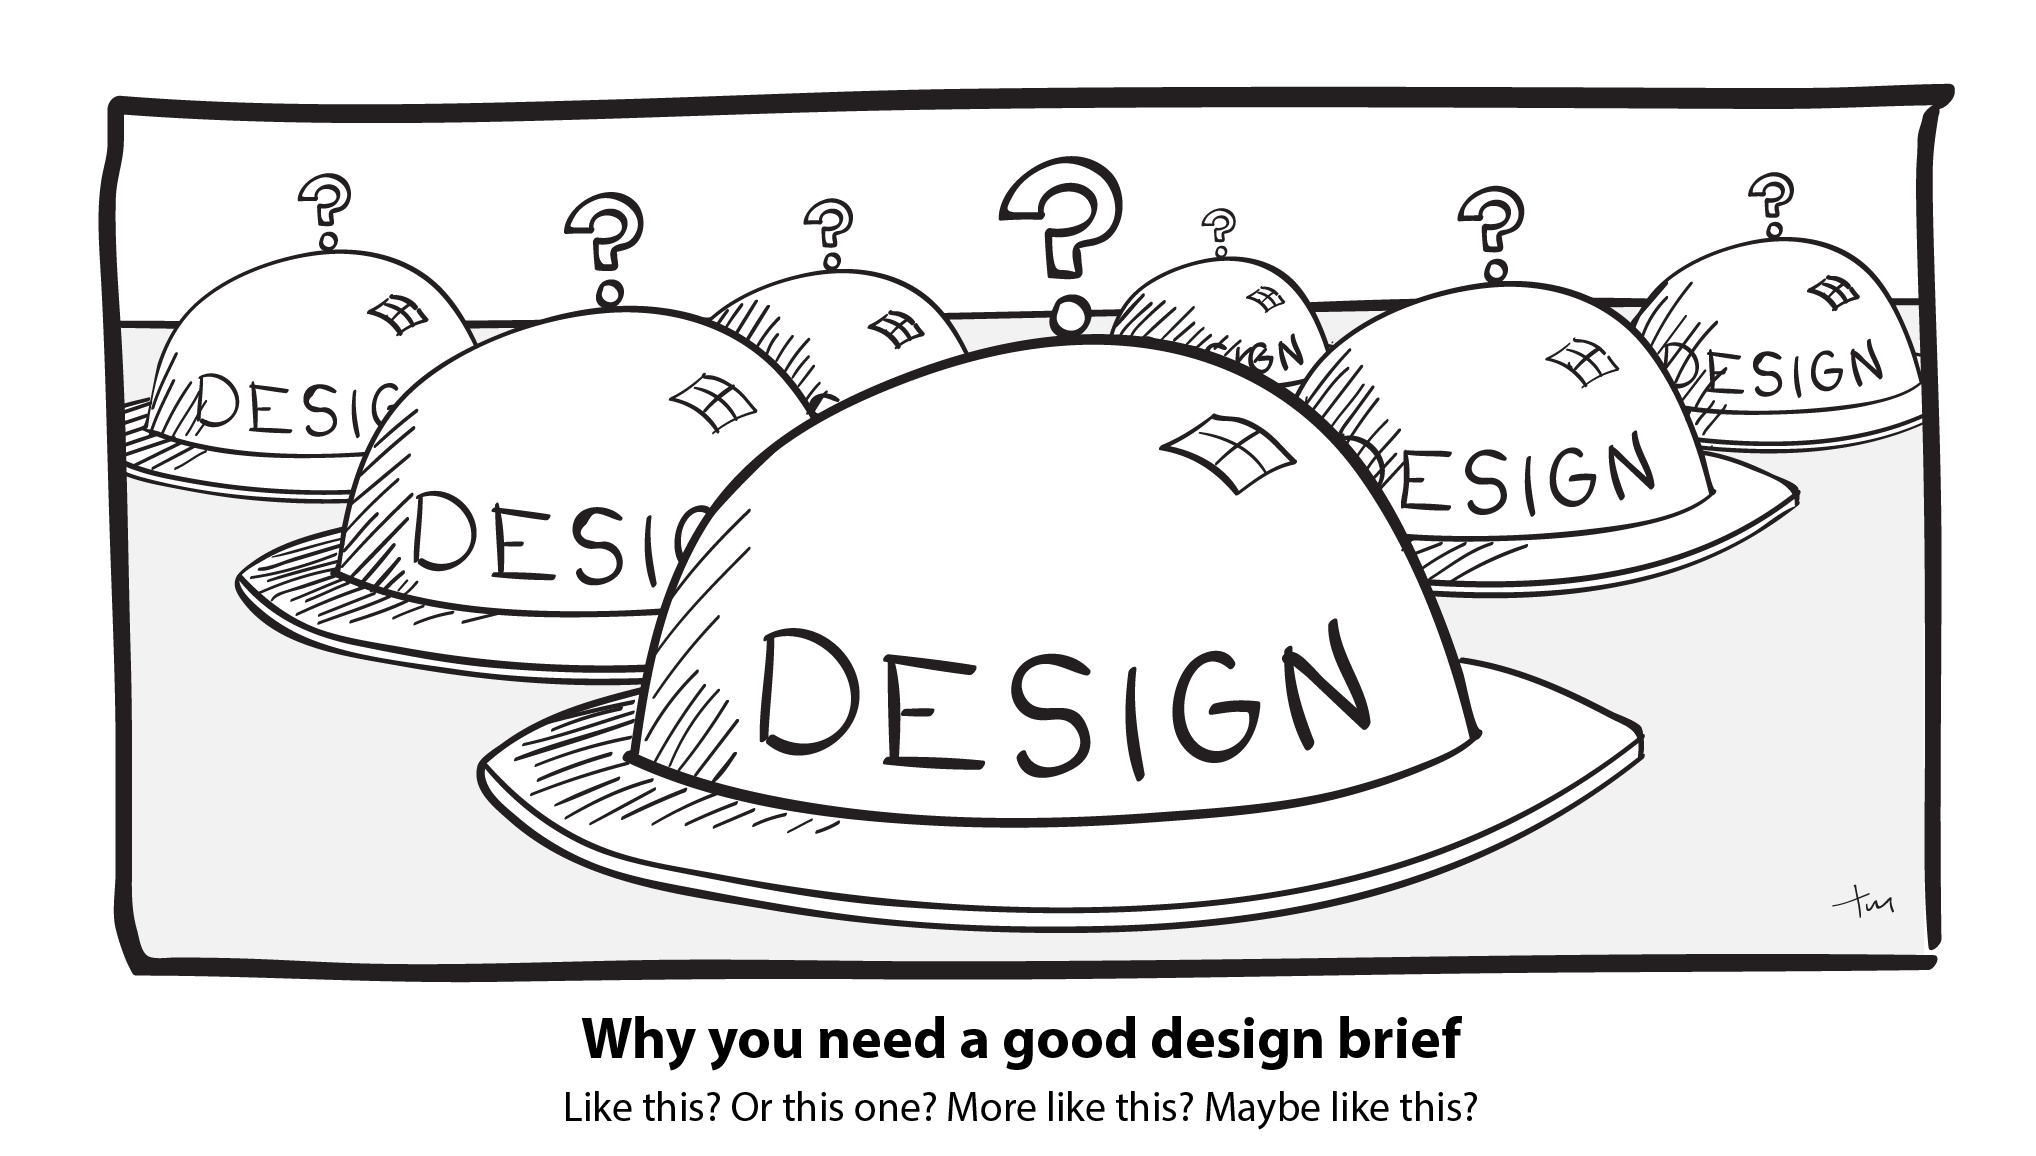 Why you need a good design brief